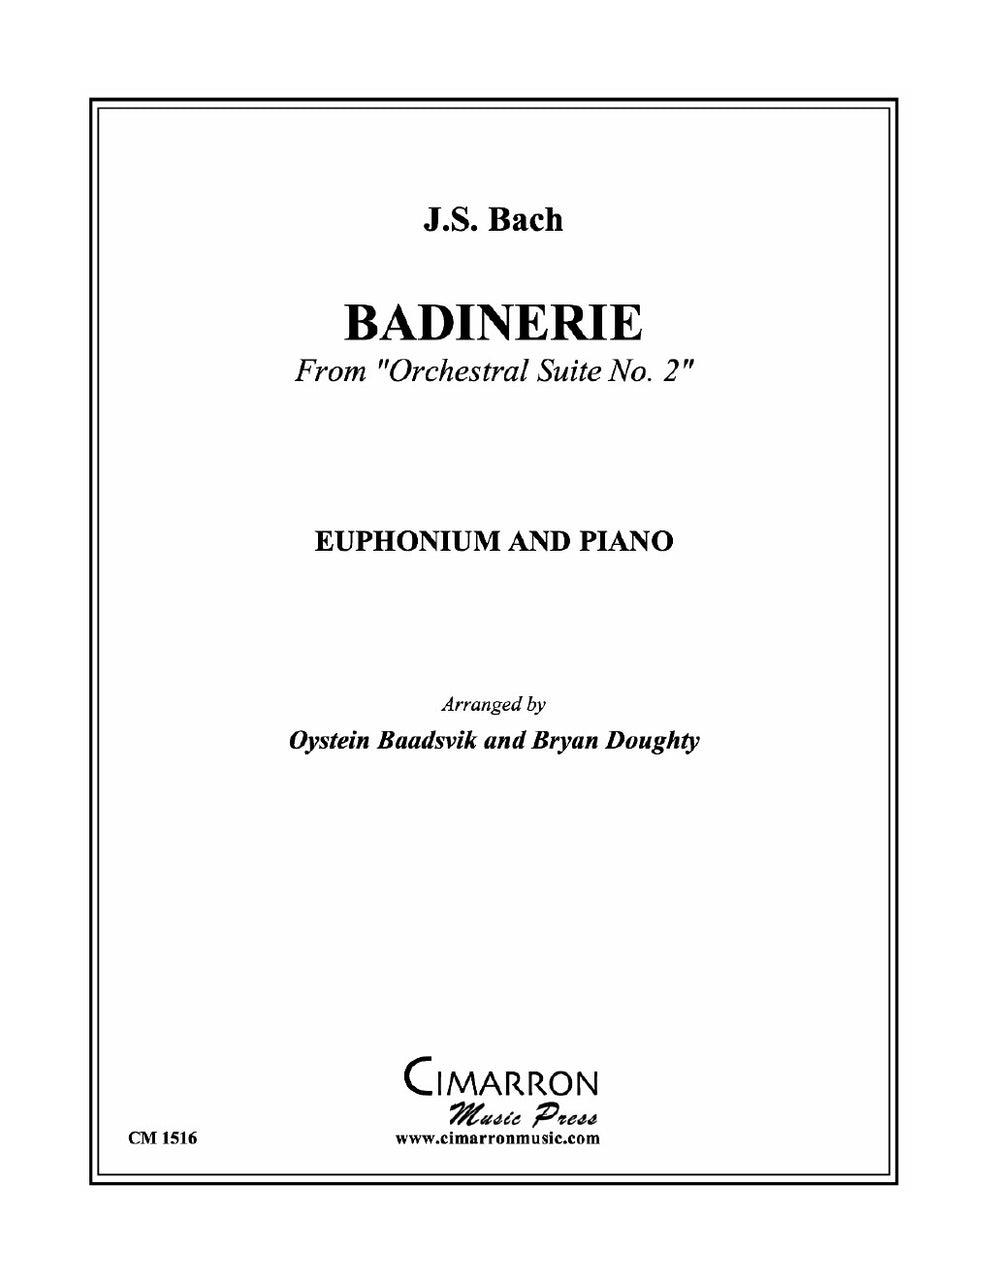 Bach - Badinerie for Euphonium and Piano